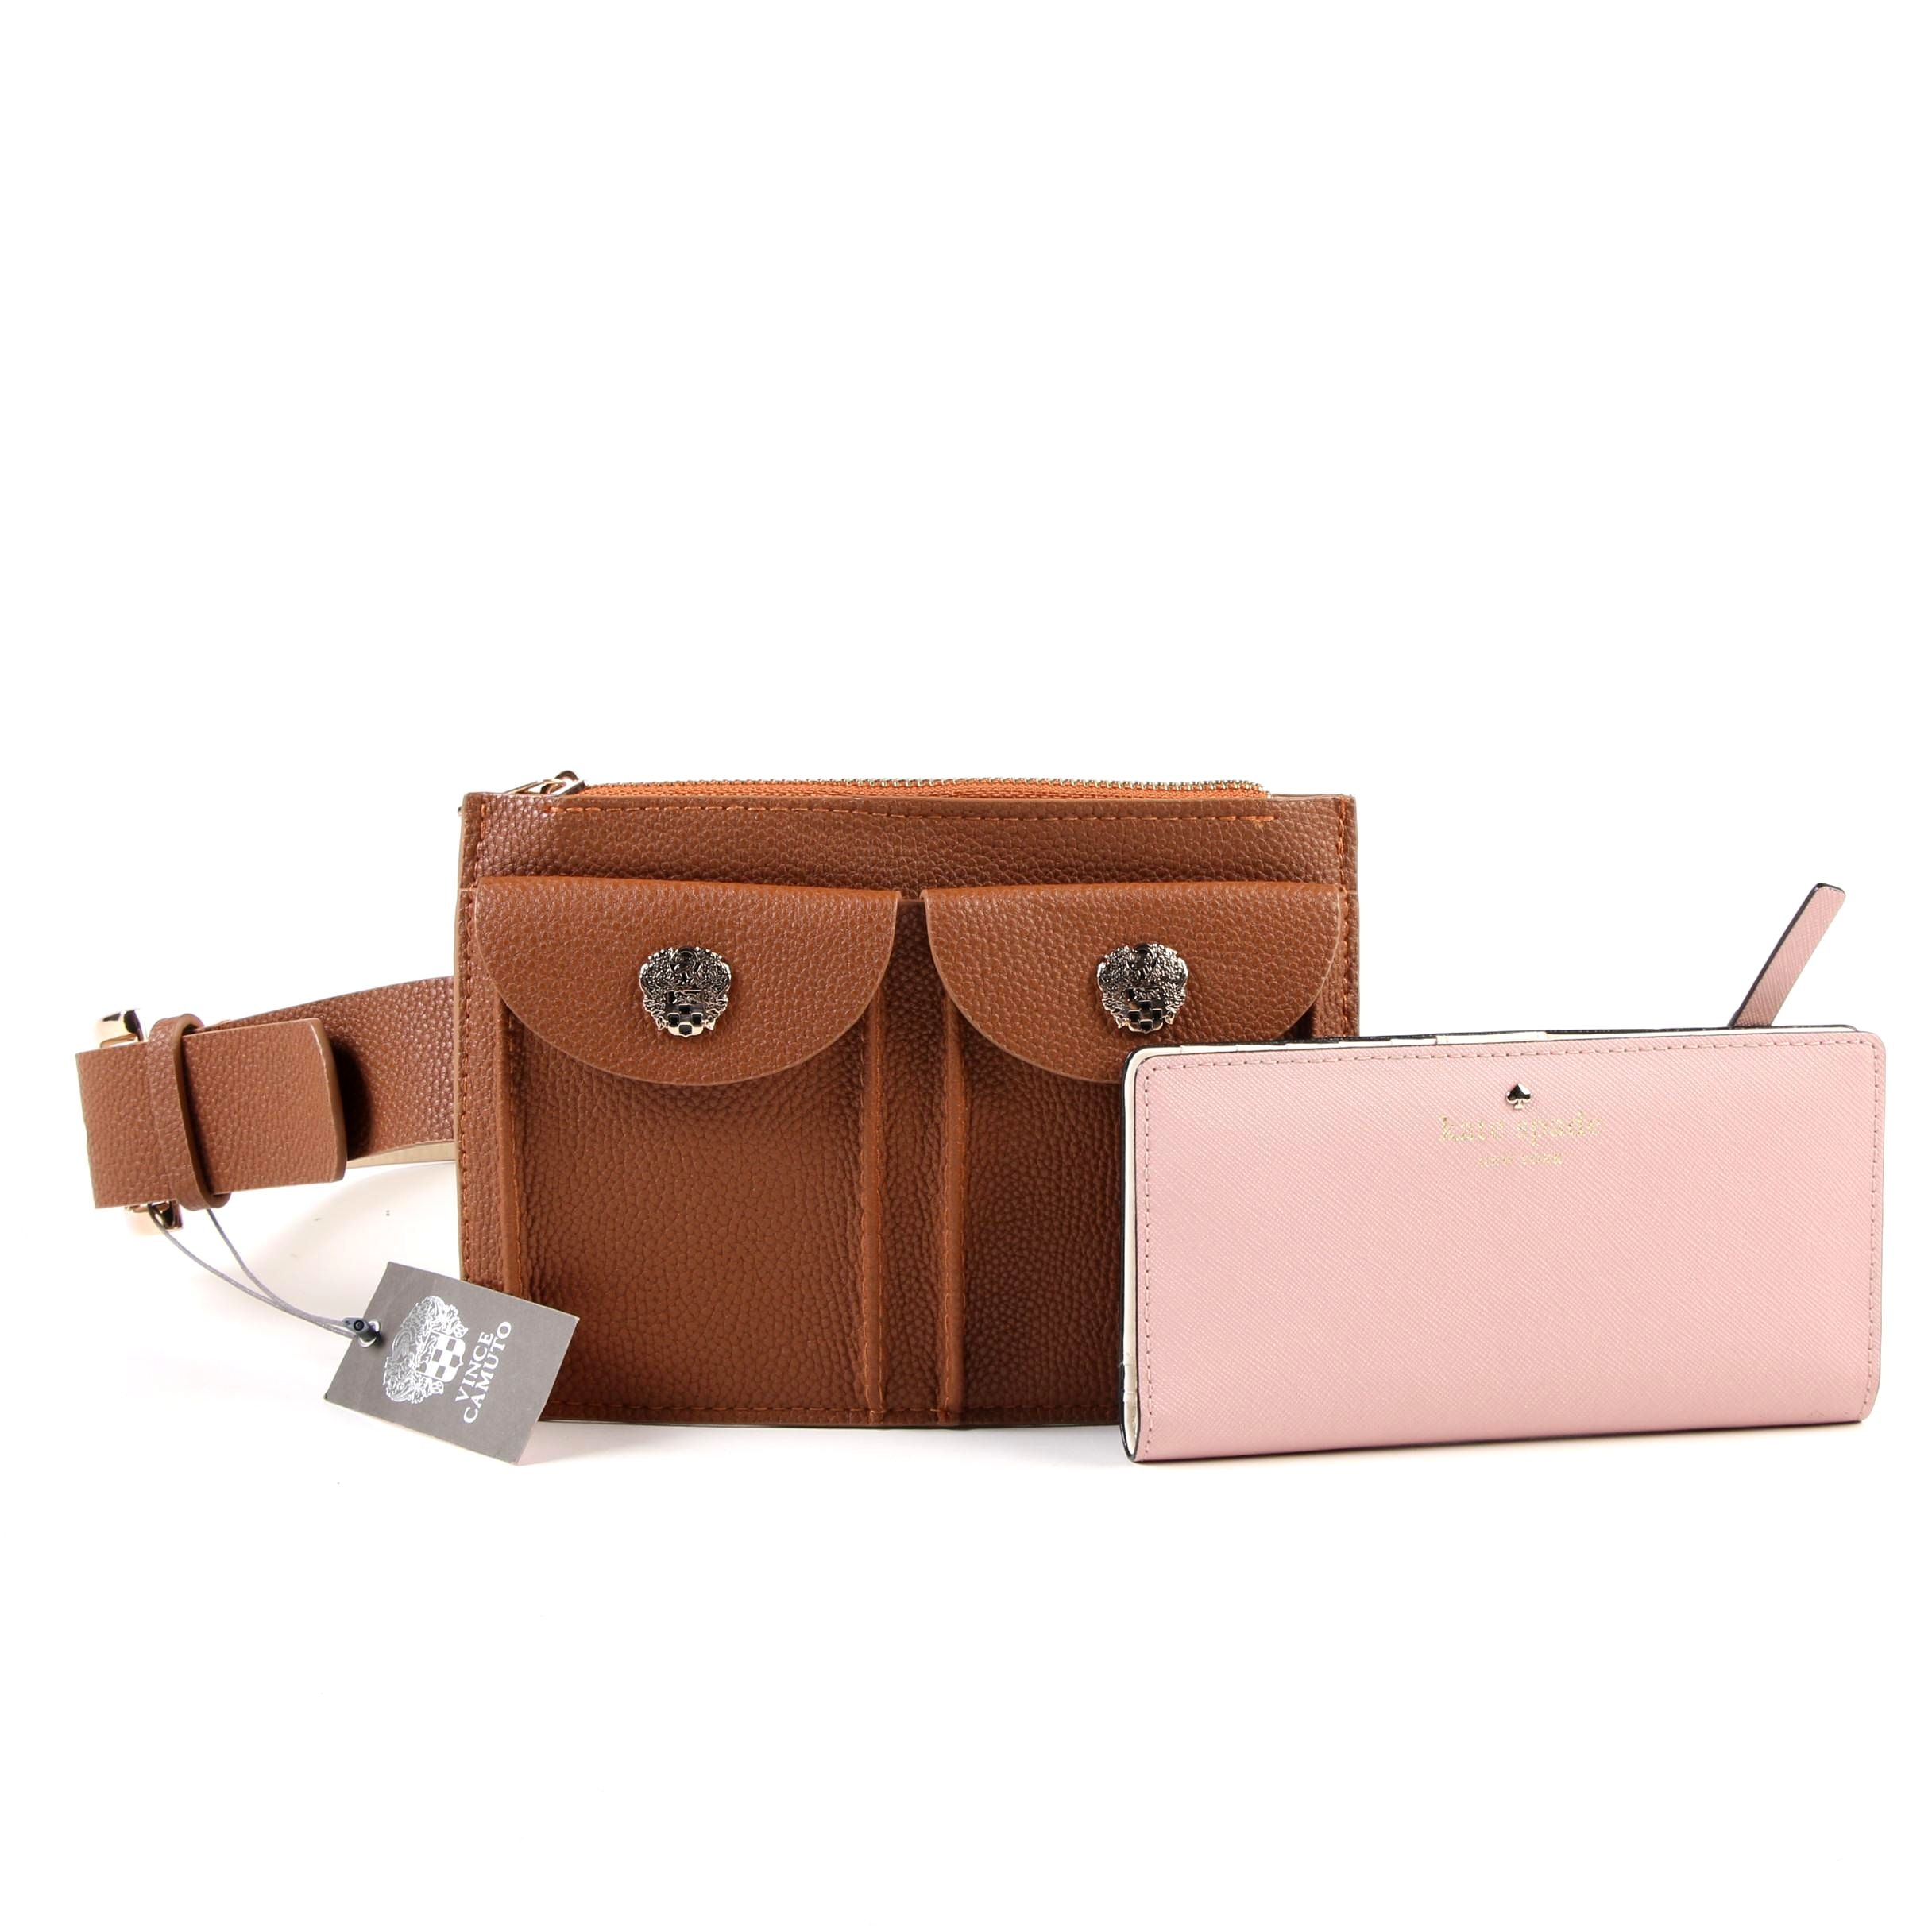 Kate Spade New York Grand Street Stacy Wallet and Vince Camuto Belt Bag